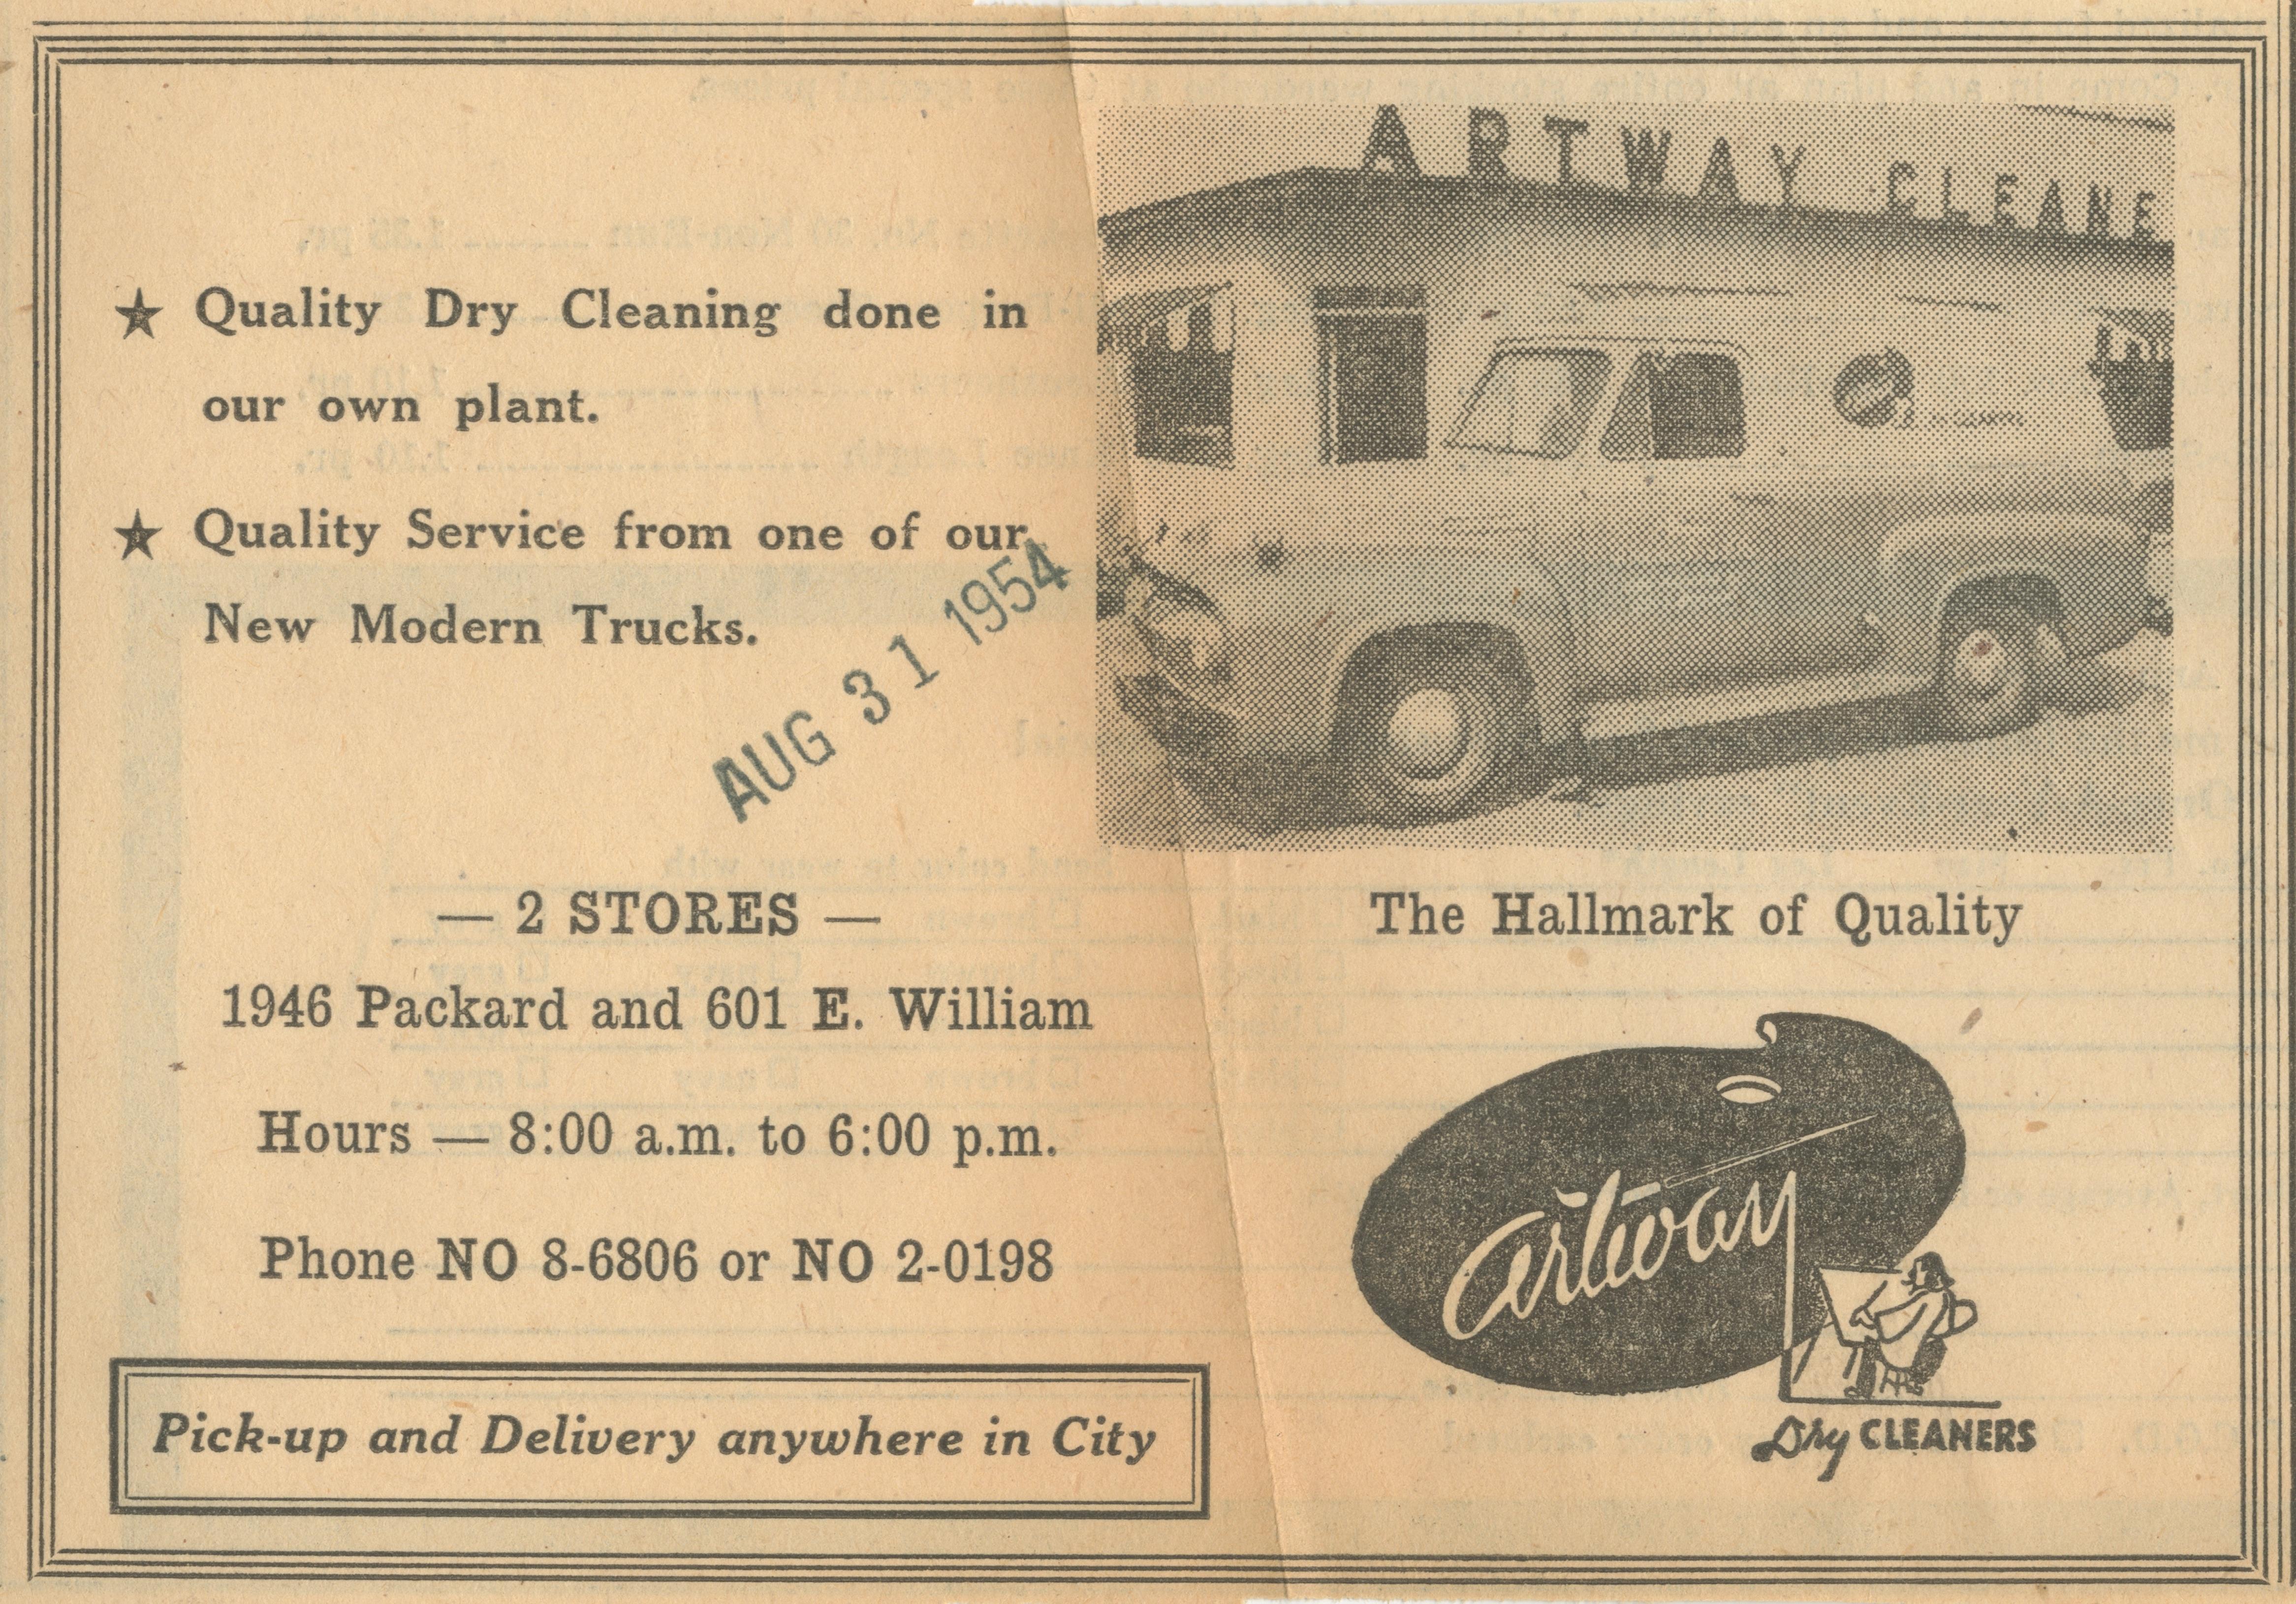 Artway Dry Cleaners [advertisement] image